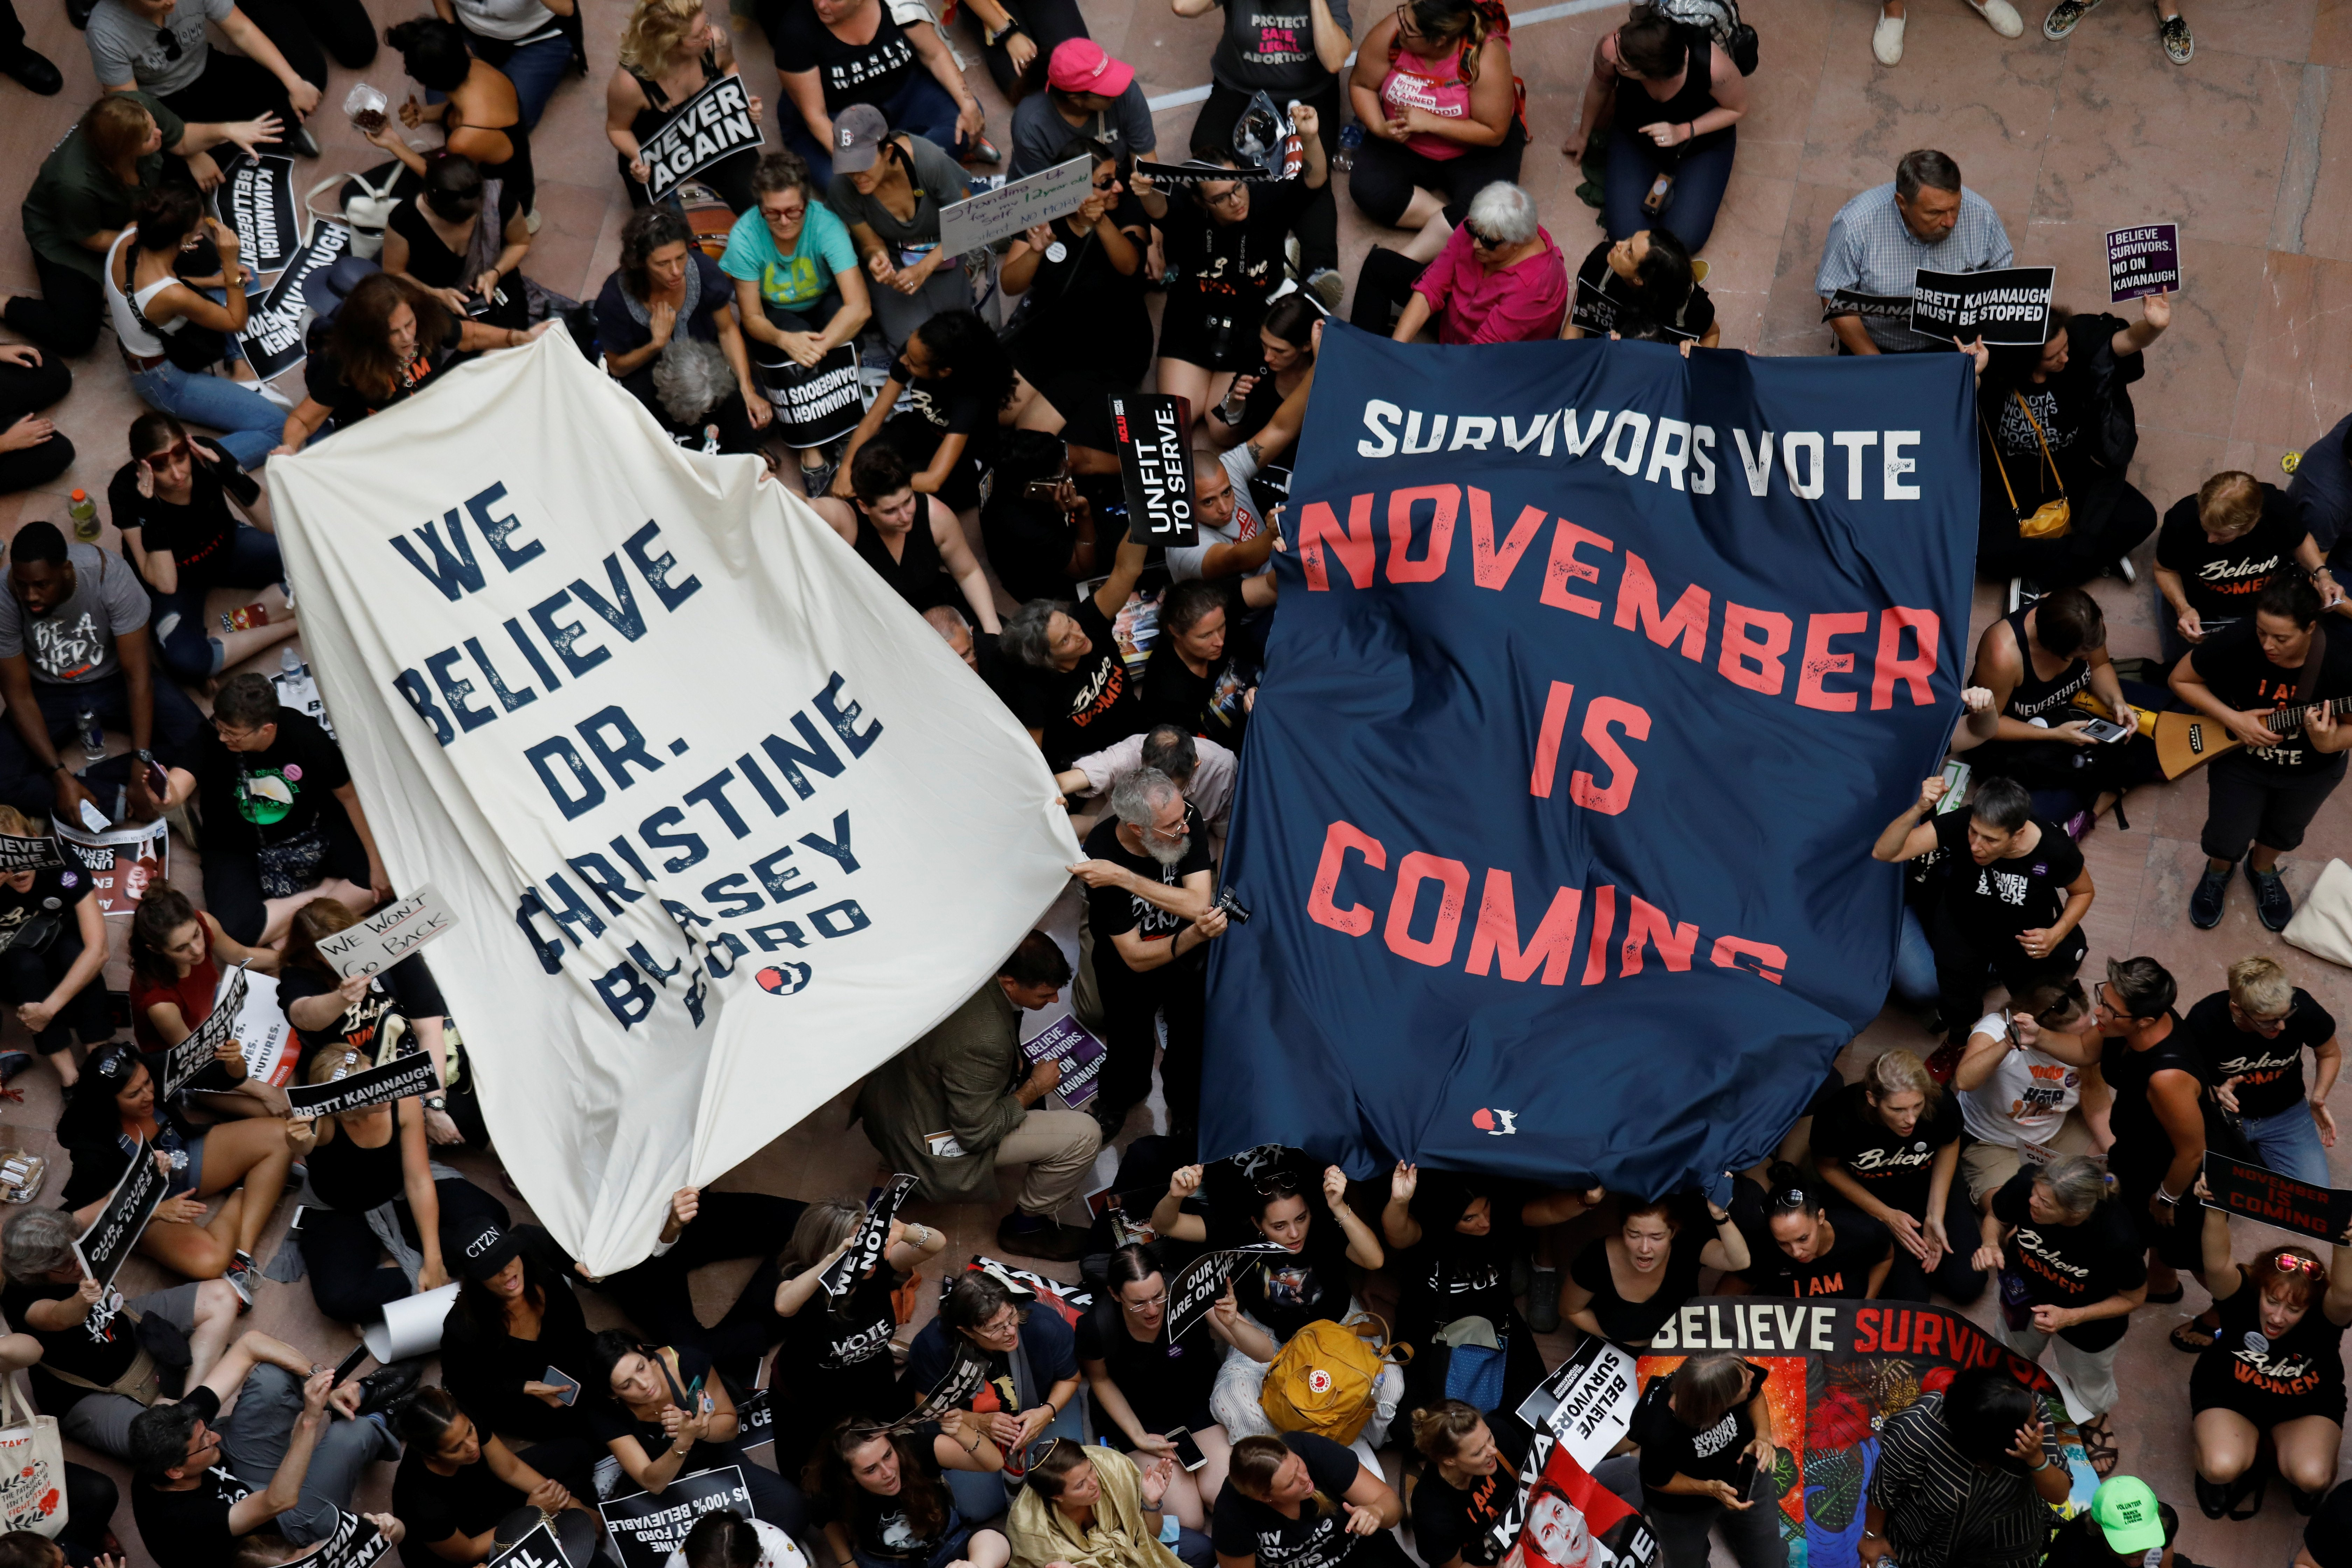 Activists rally inside the Senate Hart Office Building during a protest in opposition to U.S. Supreme Court nominee Brett Kavanaugh on Capitol Hill in Washington, U.S., October 4, 2018. REUTERS/Kevin Lamarque